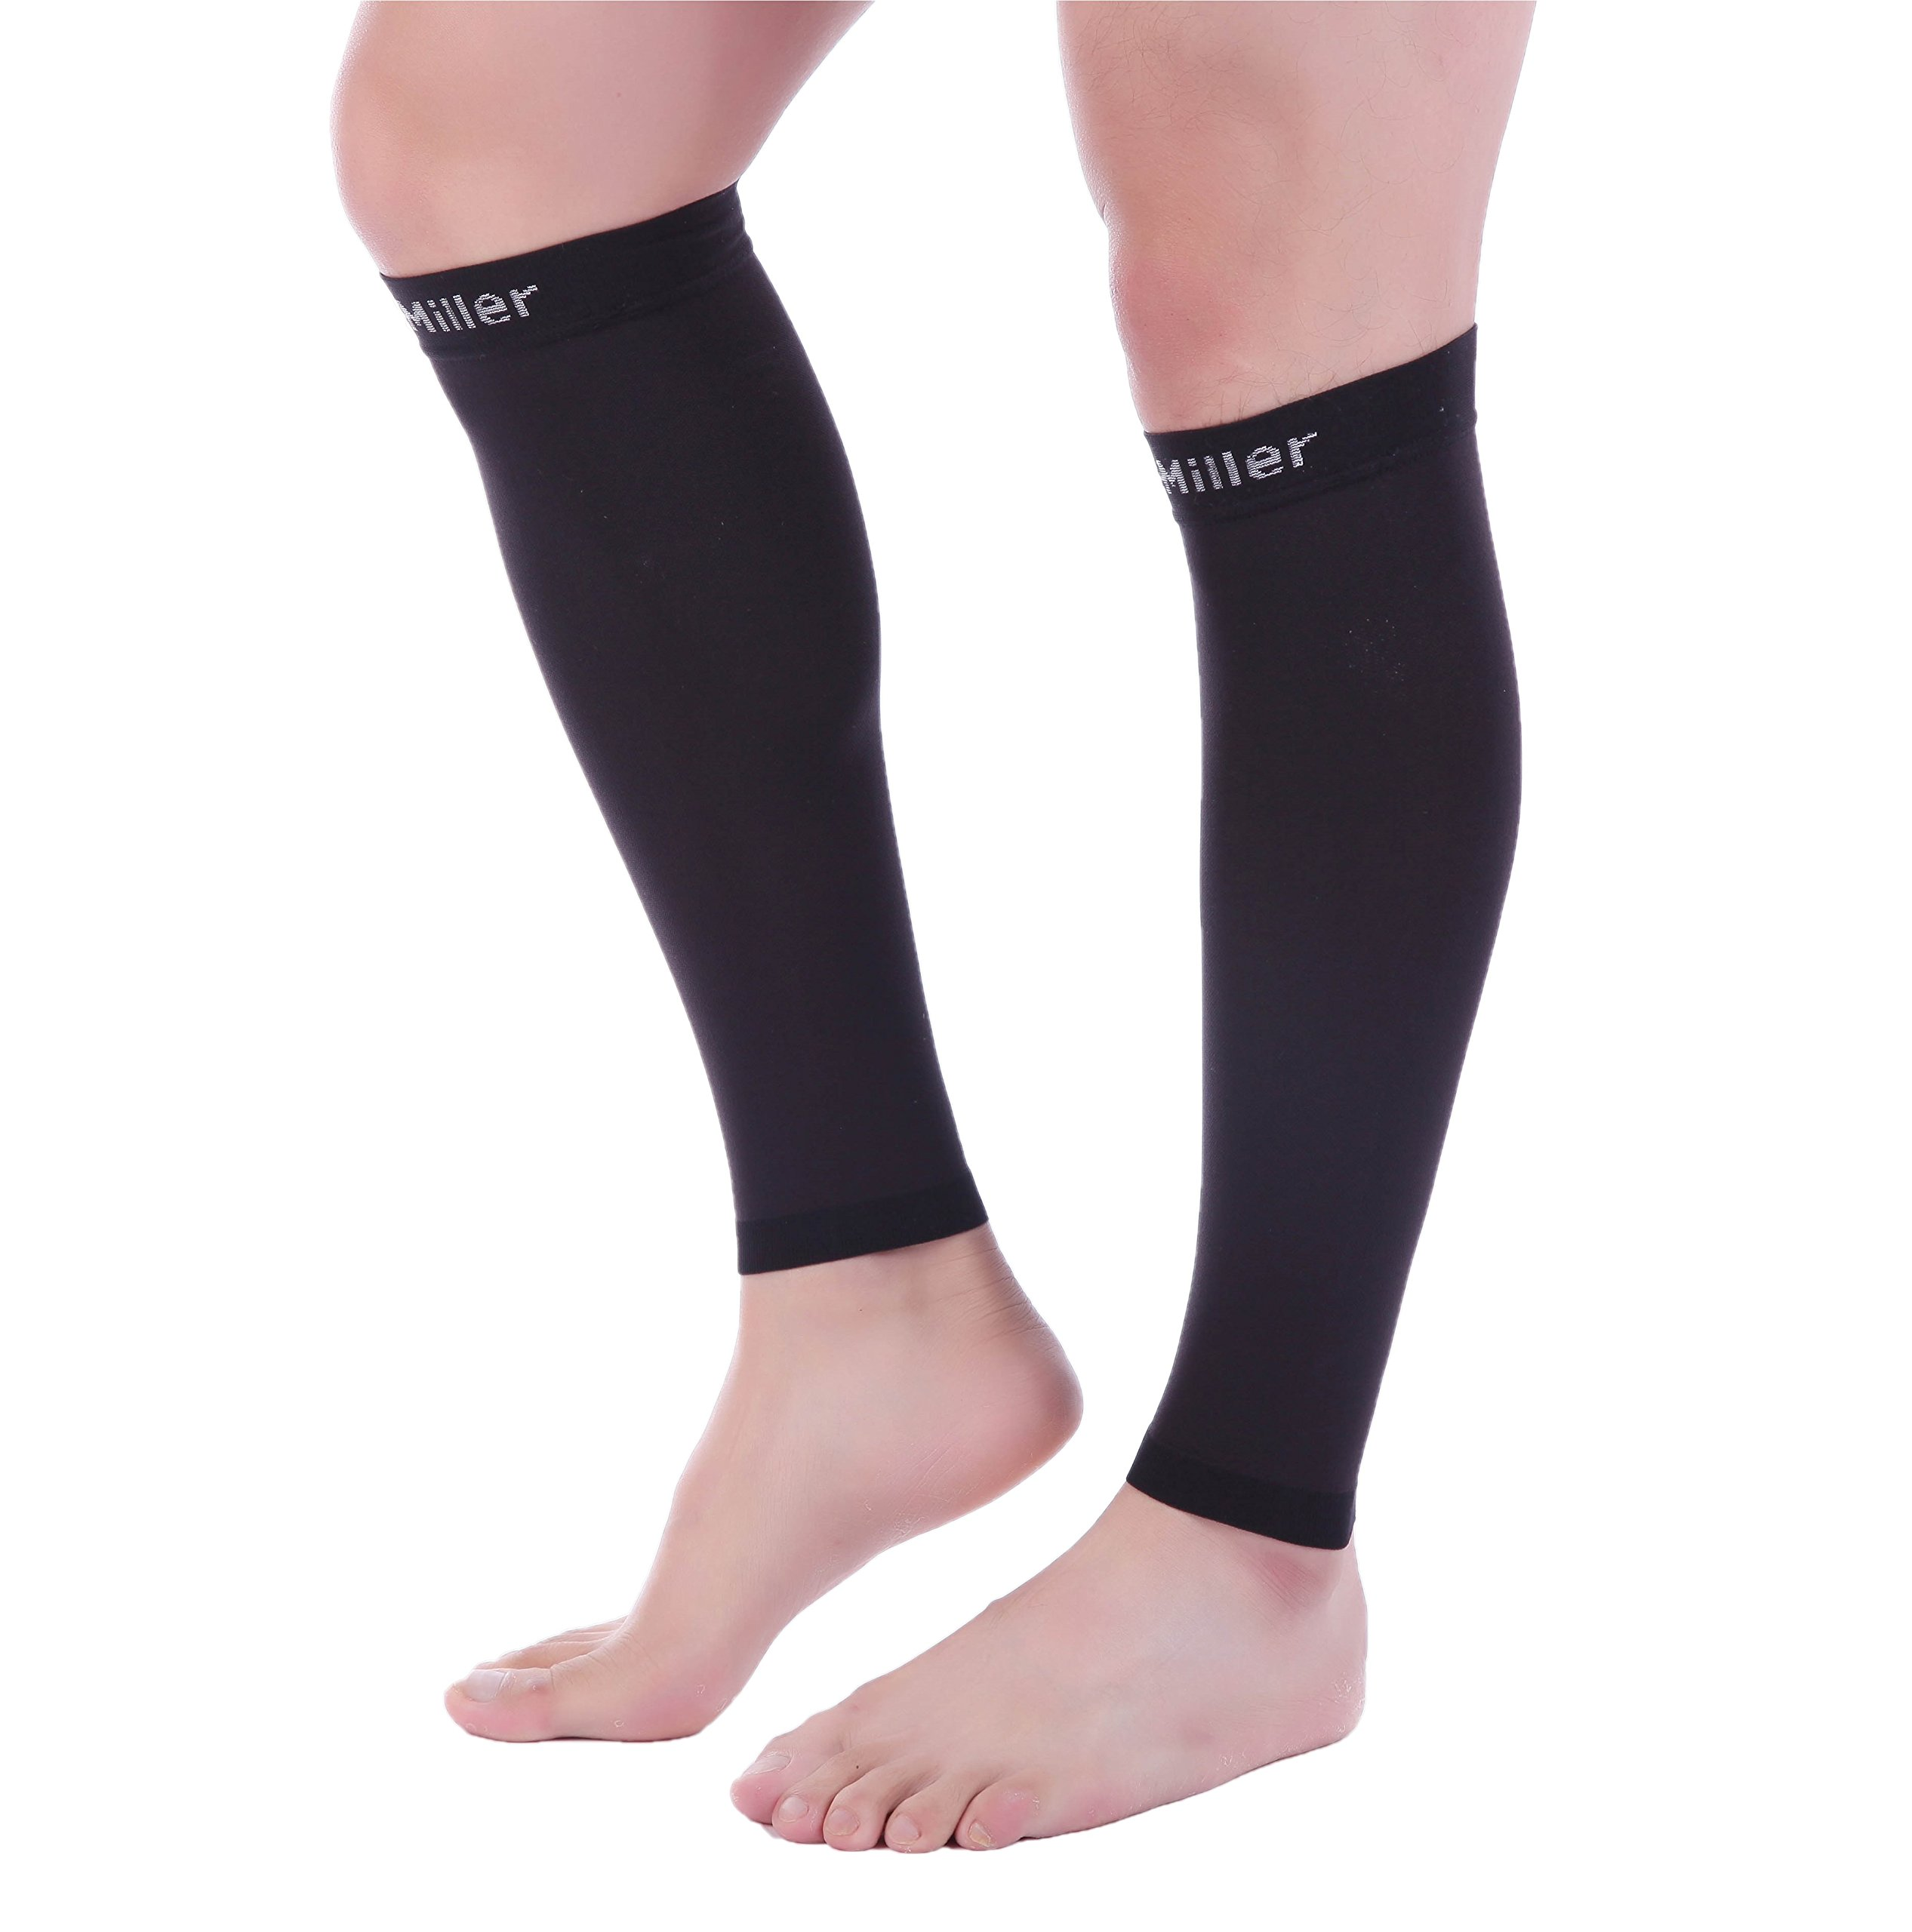 Doc Miller Premium Calf Compression Sleeve 1 Pair 20-30mmHg Strong Calf Support Graduated Pressure for Sports Running Muscle Recovery Shin Splints Varicose Veins (Black, 5X-Large) by Doc Miller (Image #5)